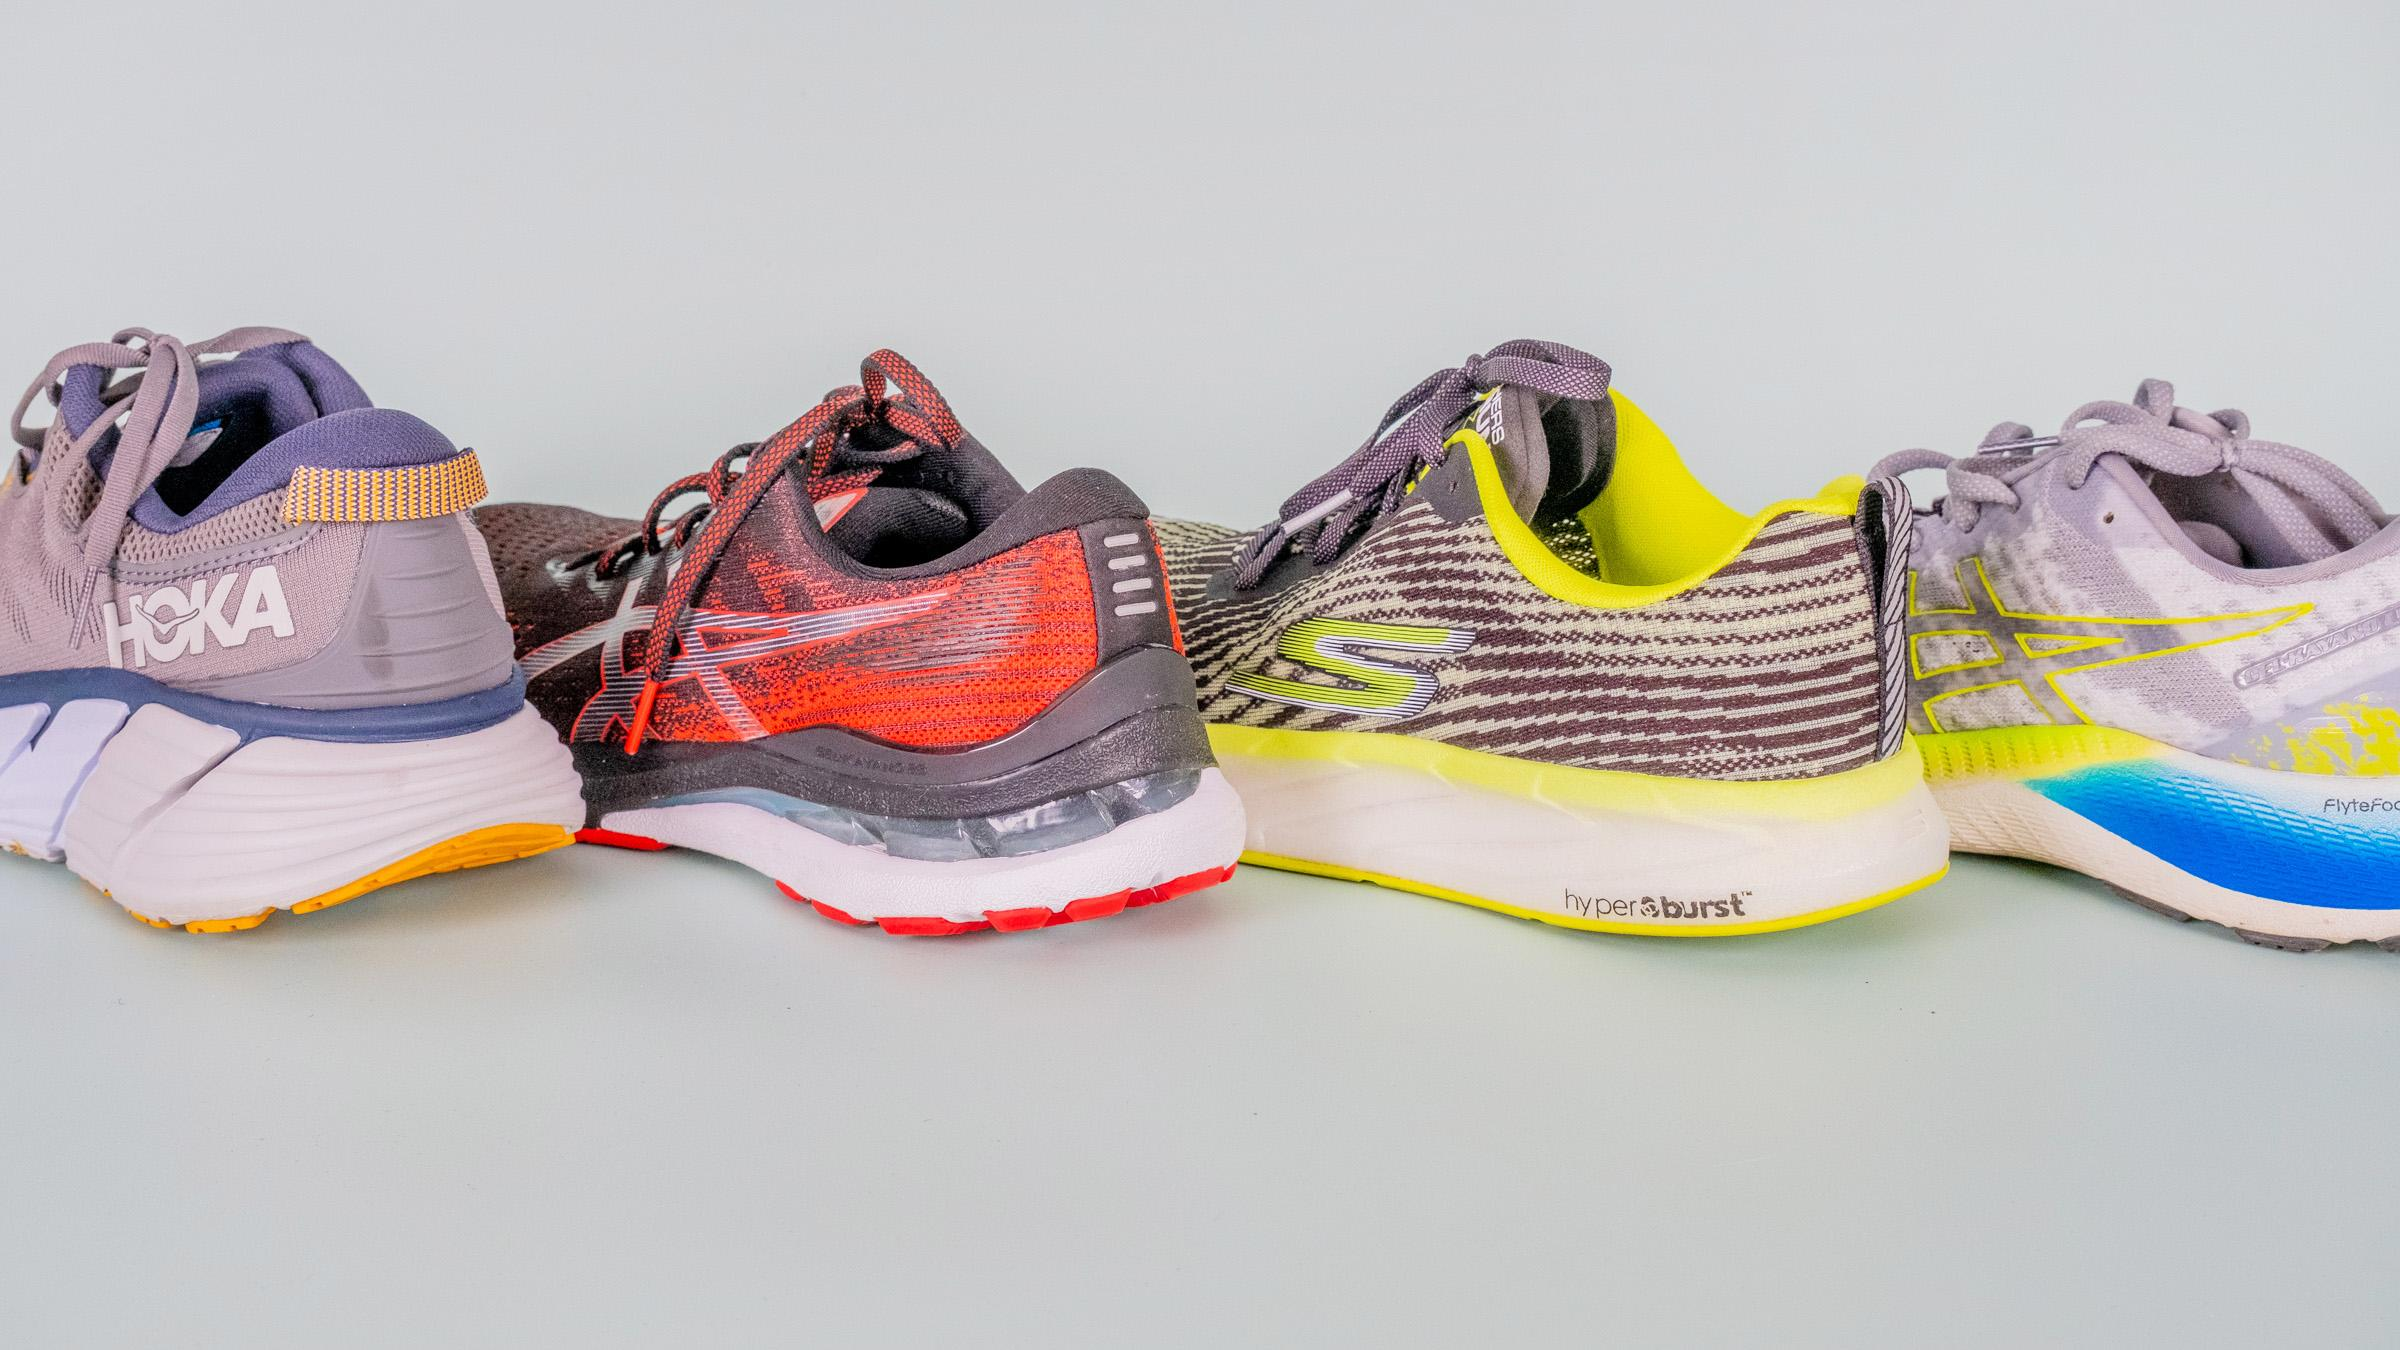 10 Best Running Shoes For Overpronation in 2021